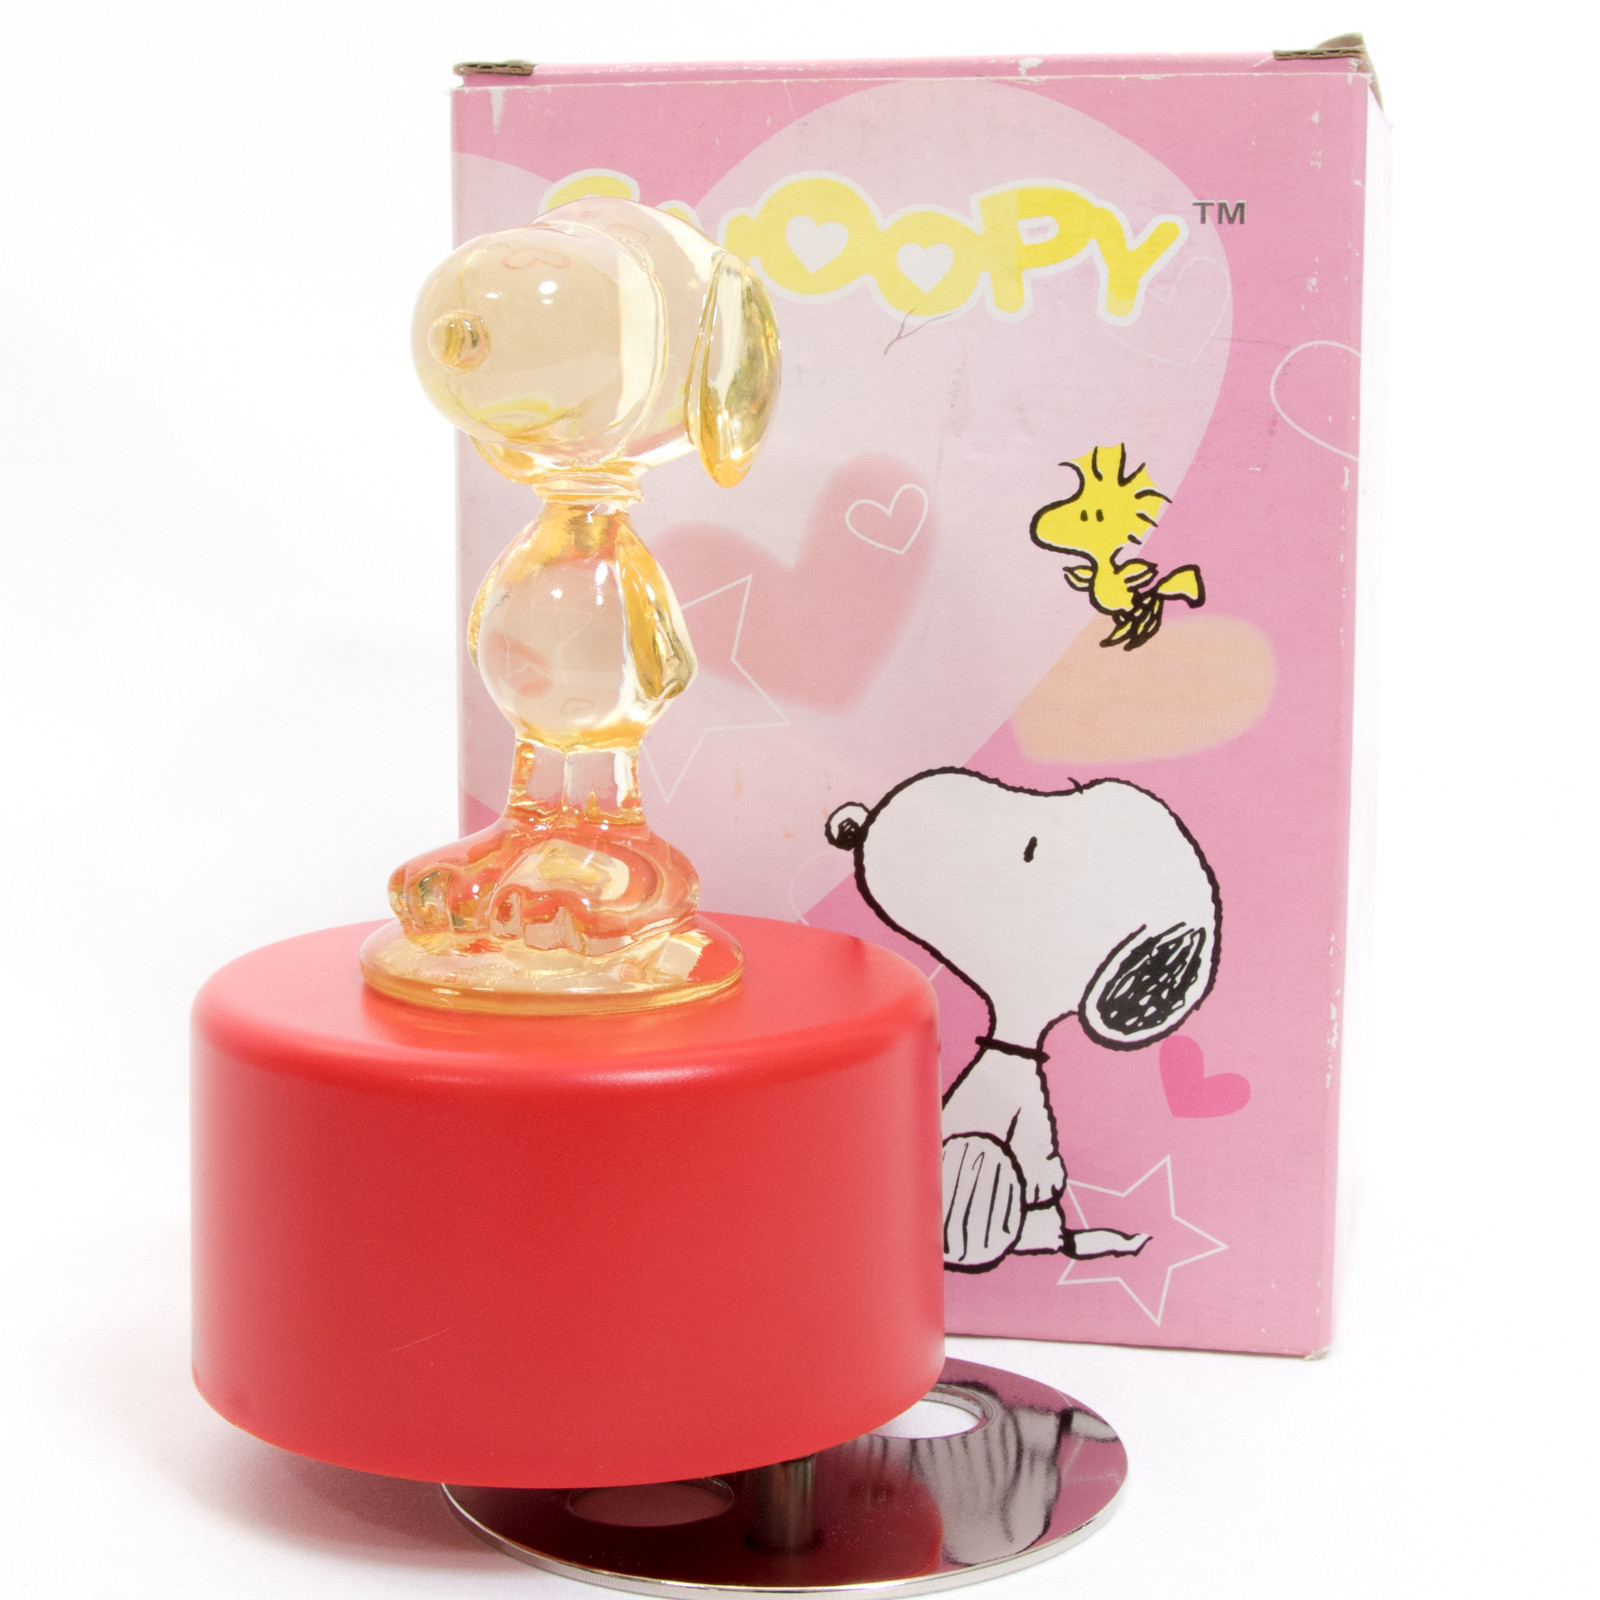 Snoopy Clear Figure Music Box with Light JAPAN ANIME ORGEL